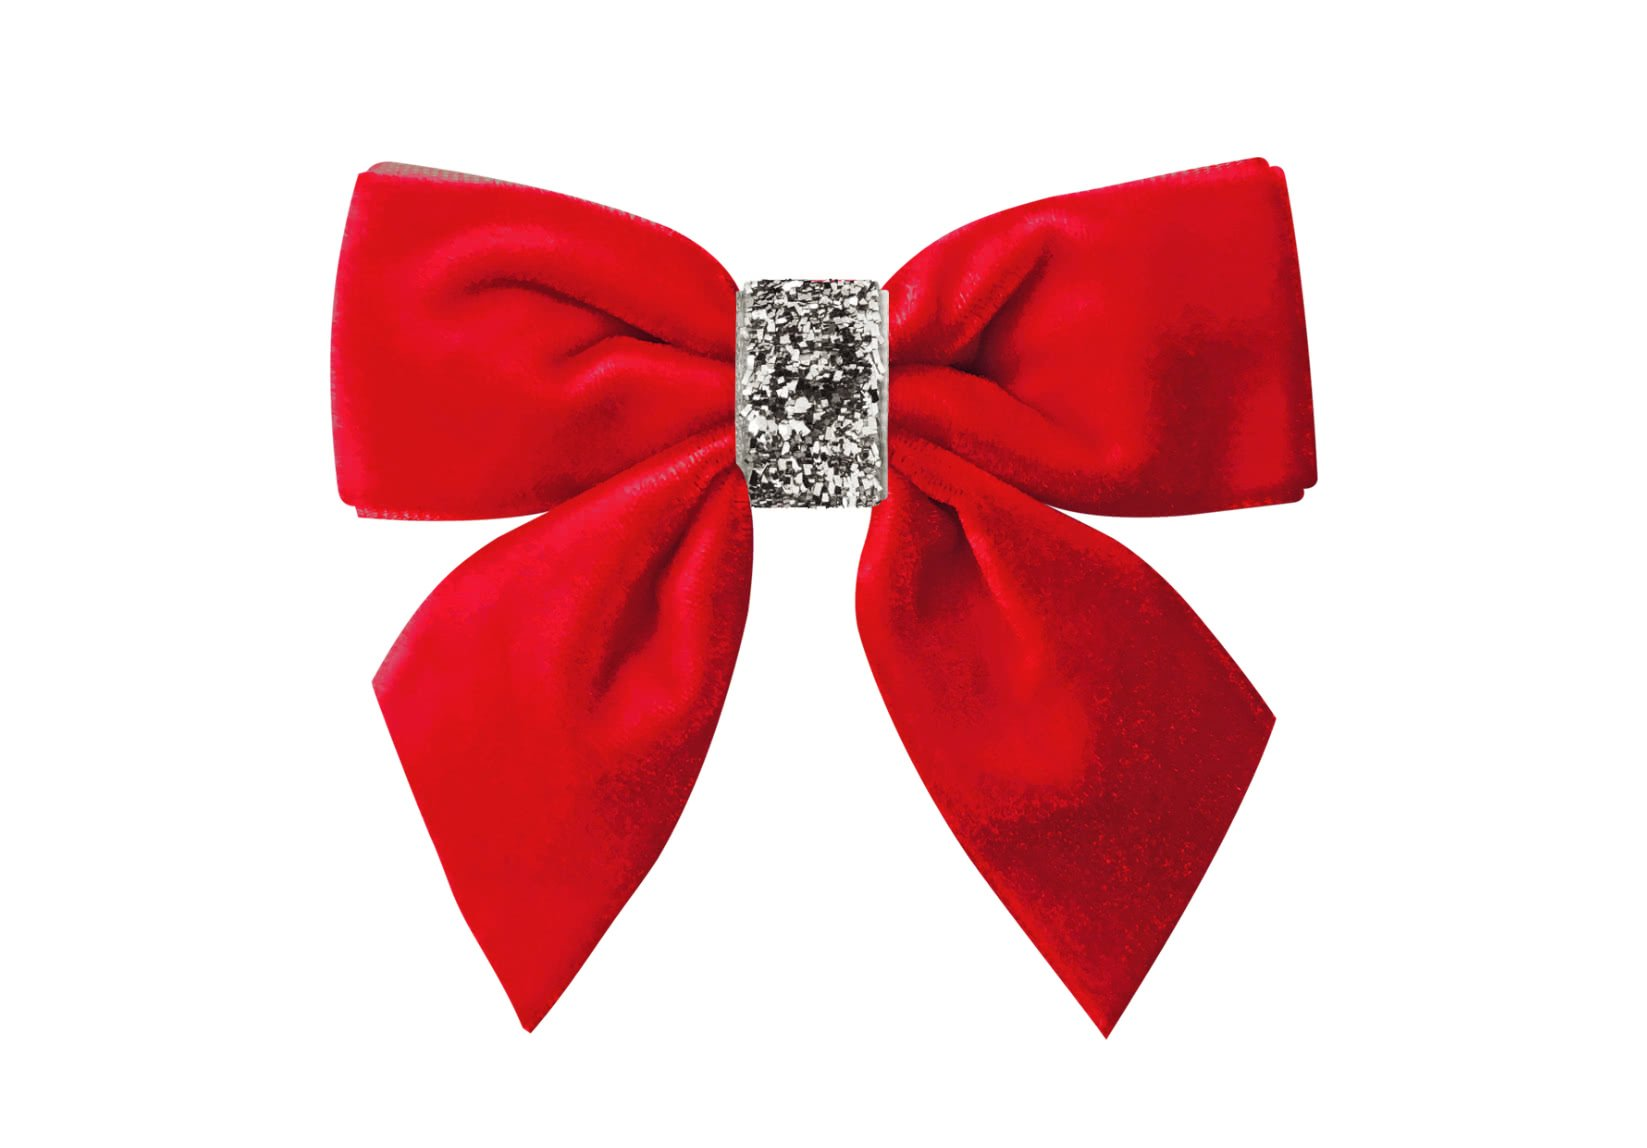 Medium Bowtie with Tails with Silver Middle